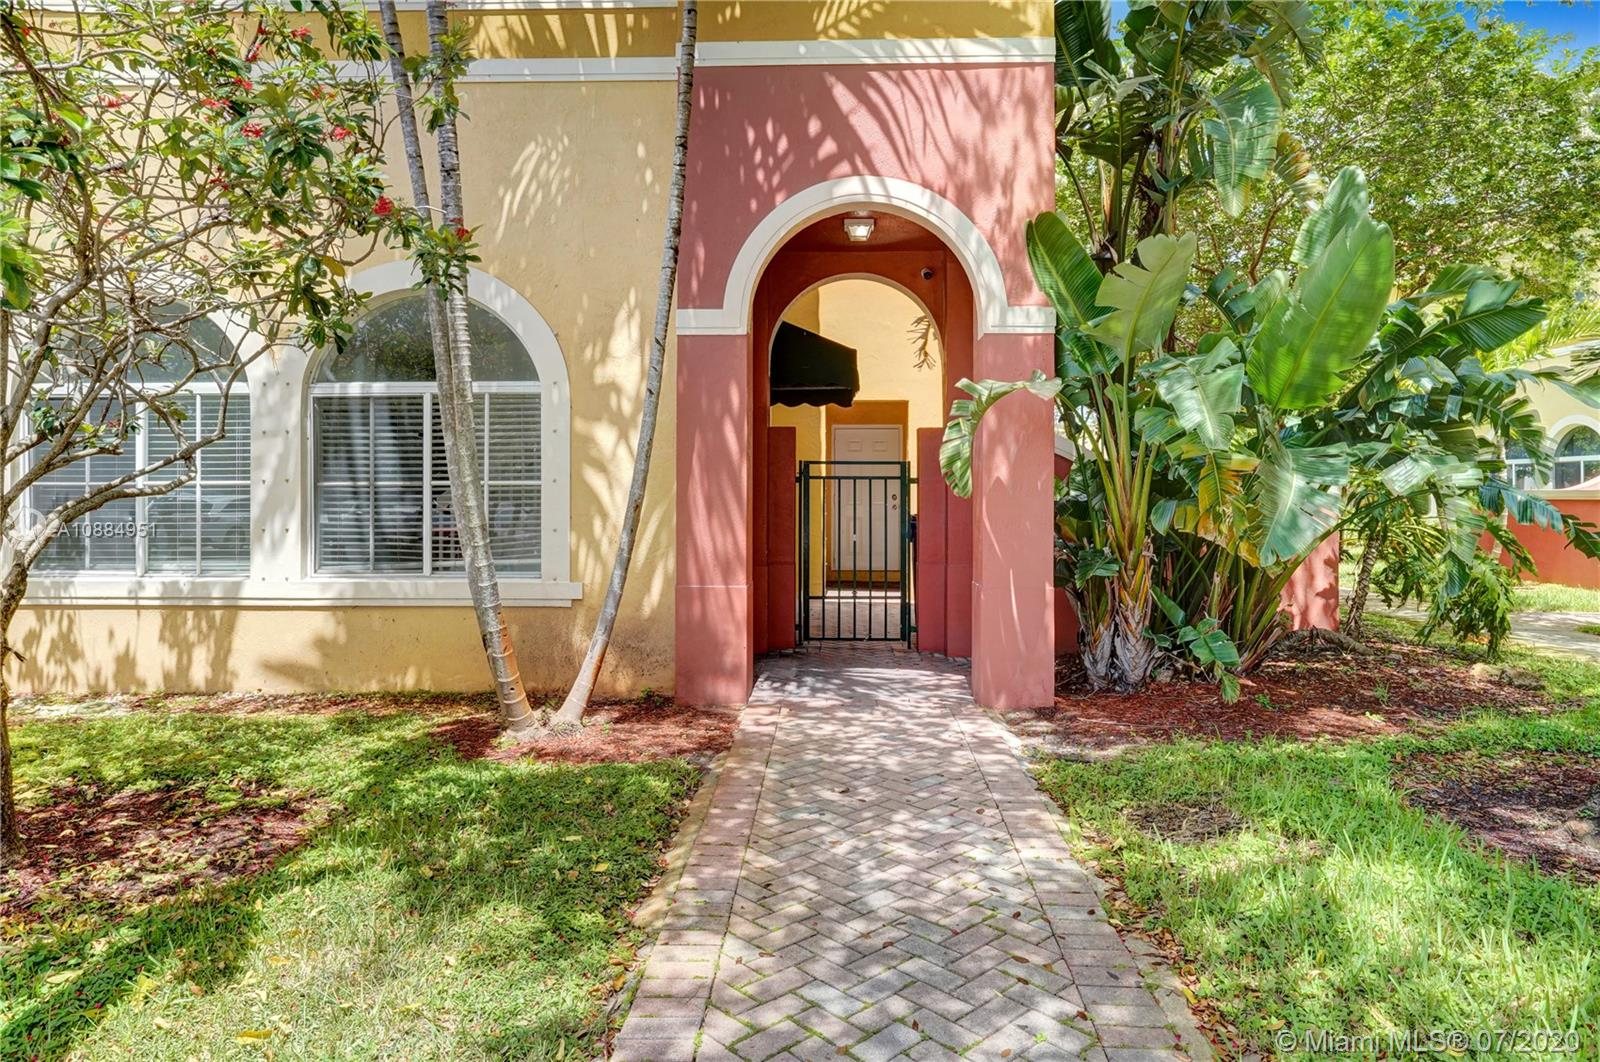 AMAZING OPPORTUNITY! To own a tastefully renovated home at a great price. Nestled on a Corner lot in a fun and beautiful community. New kitchen with granite countertops and pantry, new stainless steel appliances, lots of storage and closet space. Tiled floors on 1st floor, laminate floors upstairs. Tastefully renovated with rustic and modern bathrooms upstairs. Two balconies upstairs. Property will appraise with all upgrades added on. Original A/C unit, no credits. Clubhouse currently being renovated. Amenities include: Community Pool, Tot Lot and Gym. HOA FEES INCLUDES: cable TV, high-speed internet, landscaping, maintenance of the common areas, security patrol, management onsite, pool and clubhouse. Near major highways (I-95 & Turnpike) and 441.